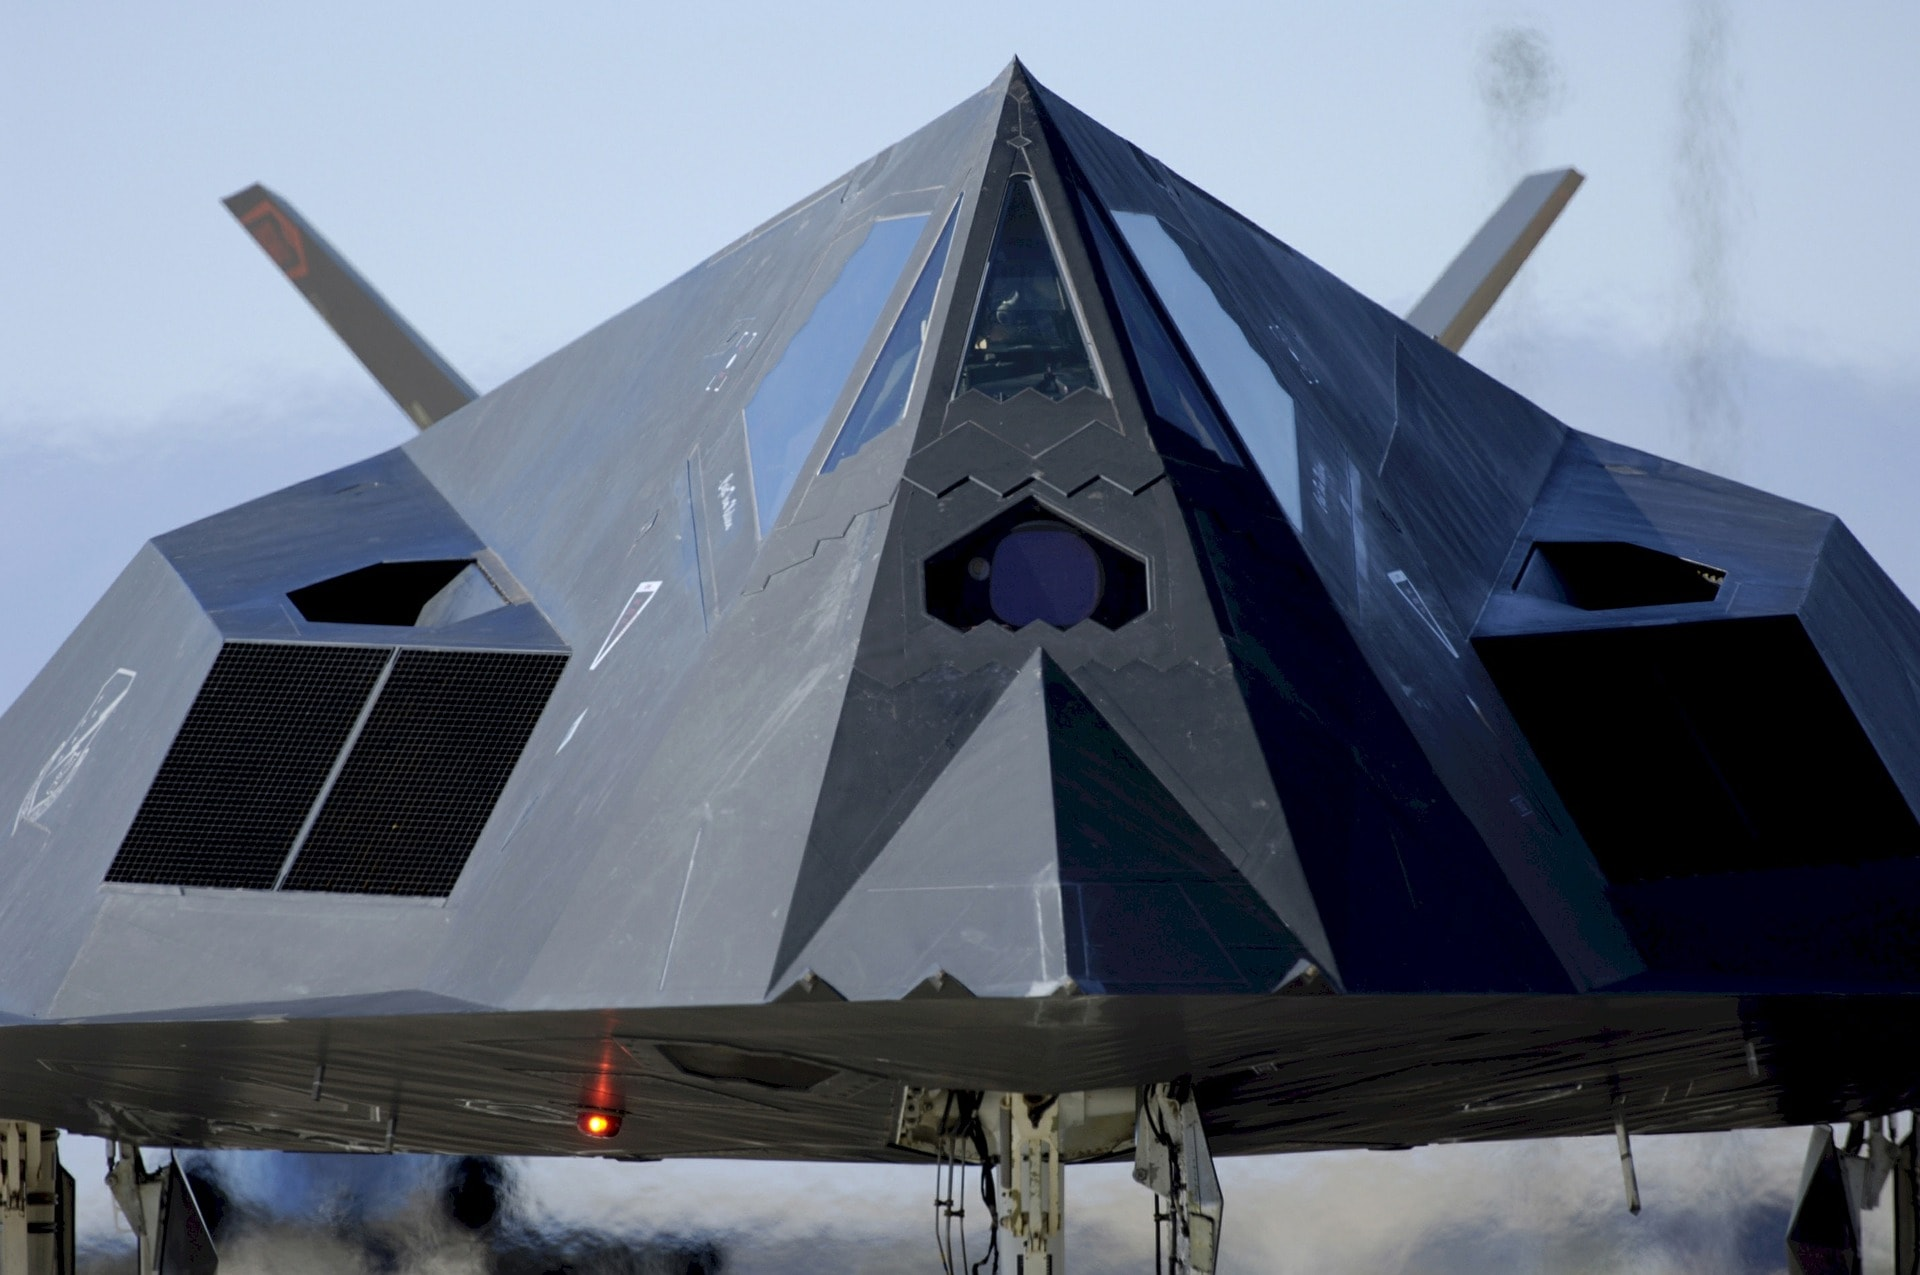 F-117 Nighthawk parked